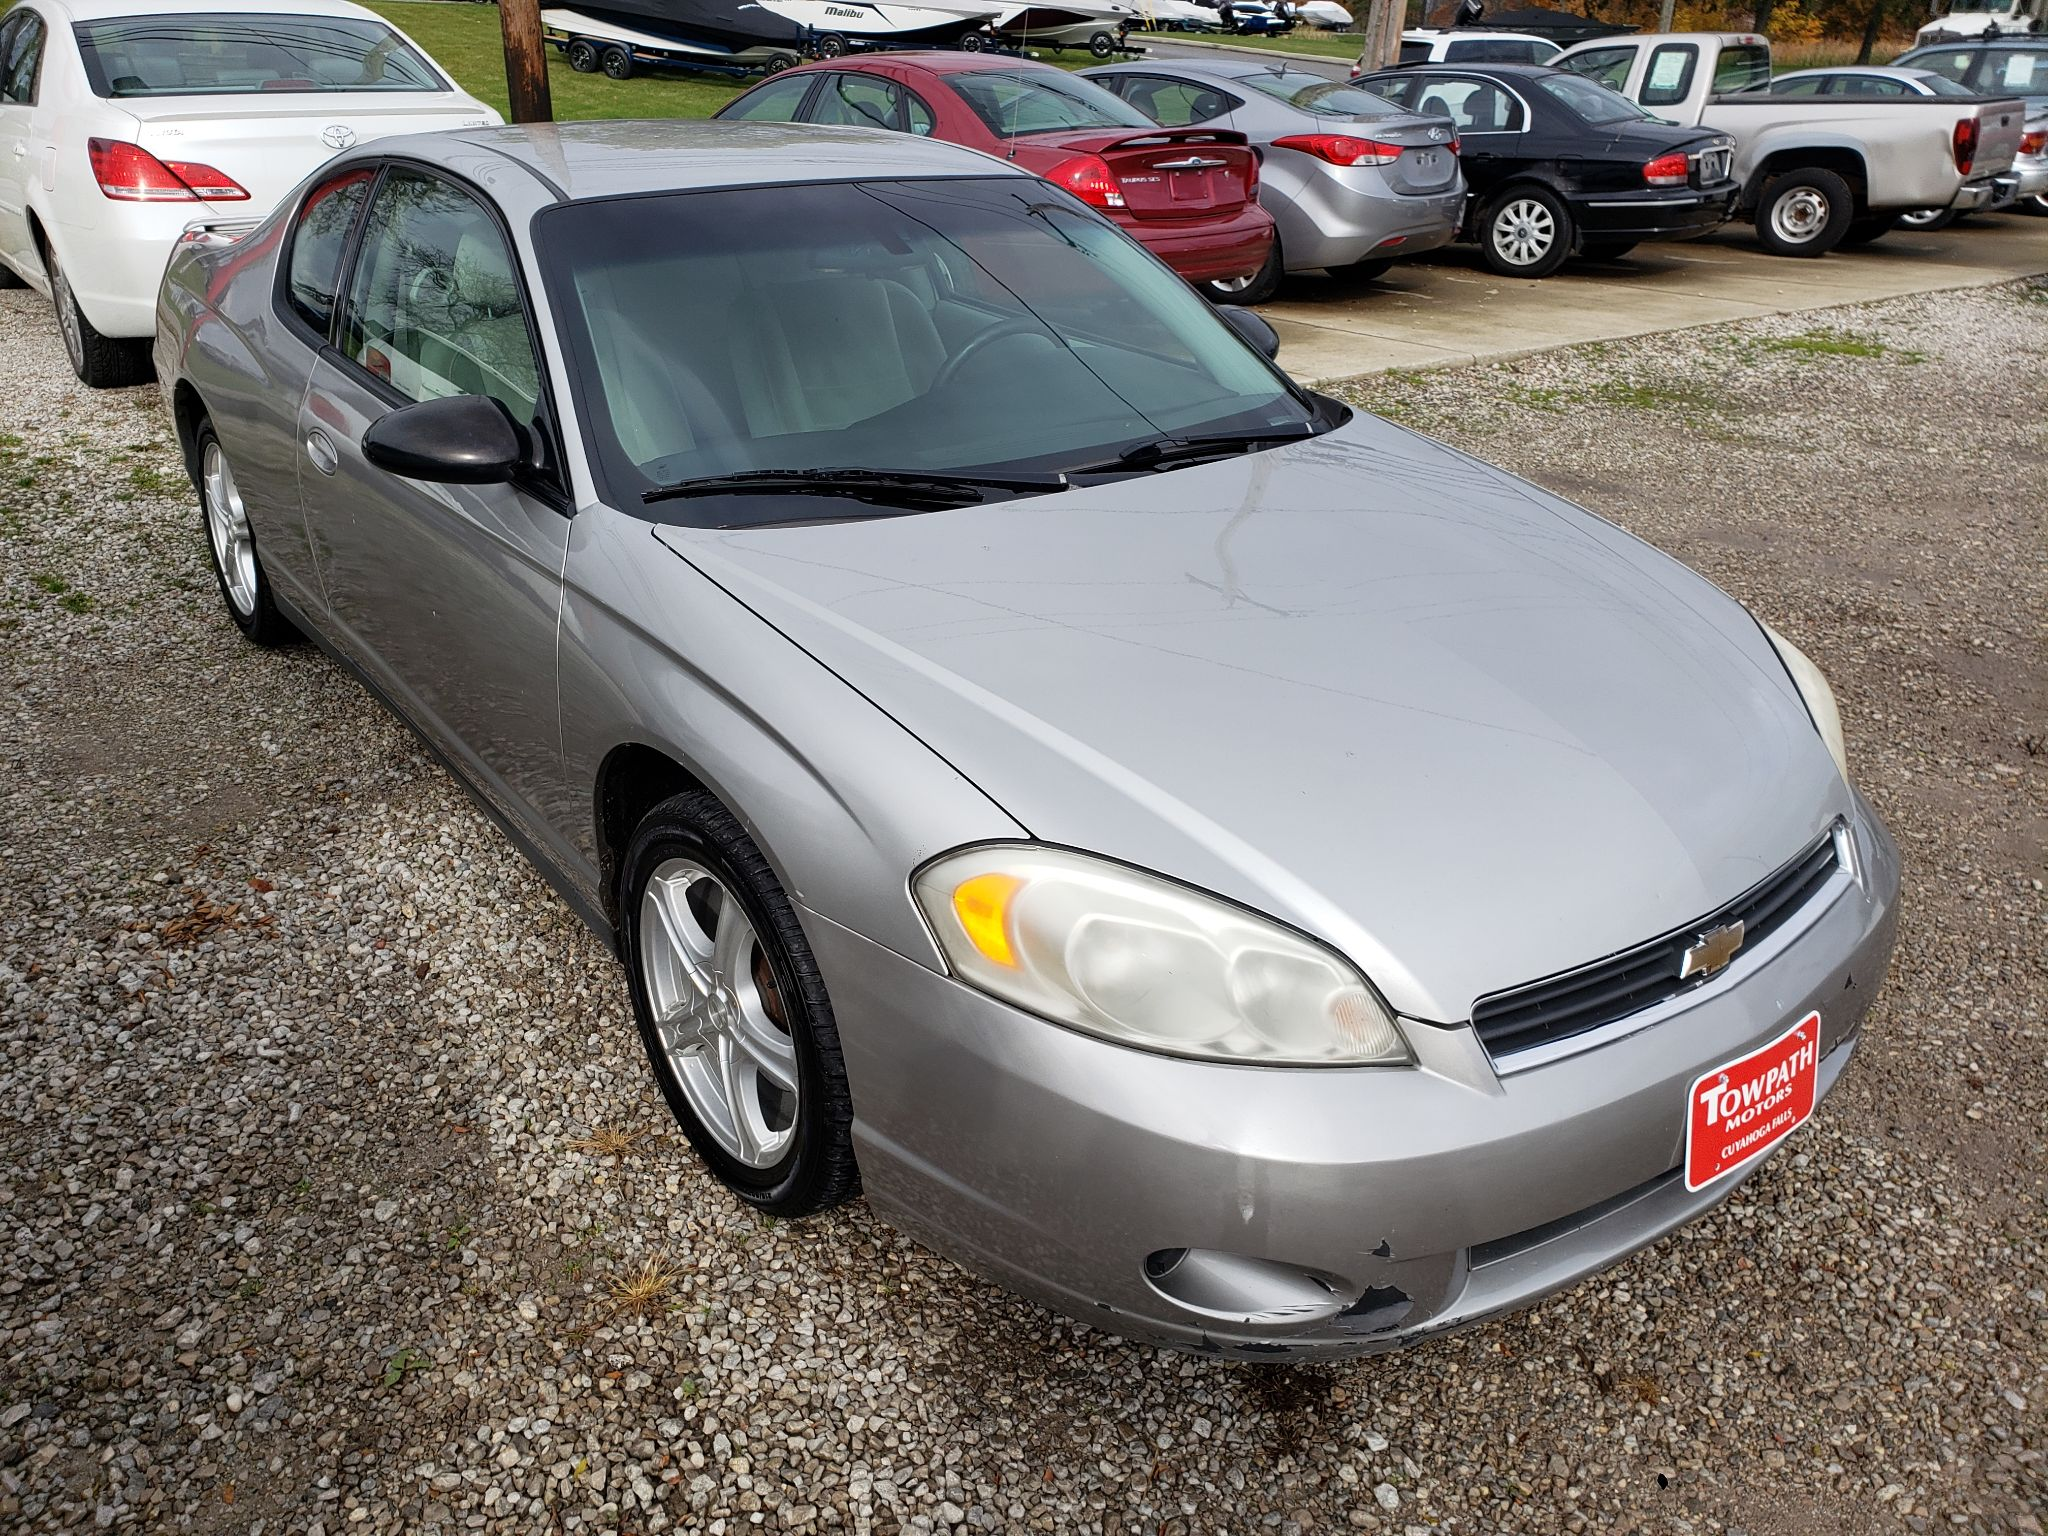 2007 Chevrolet Monte Carlo for sale at Towpath Motors   Used Car Dealer in Peninsula Ohio